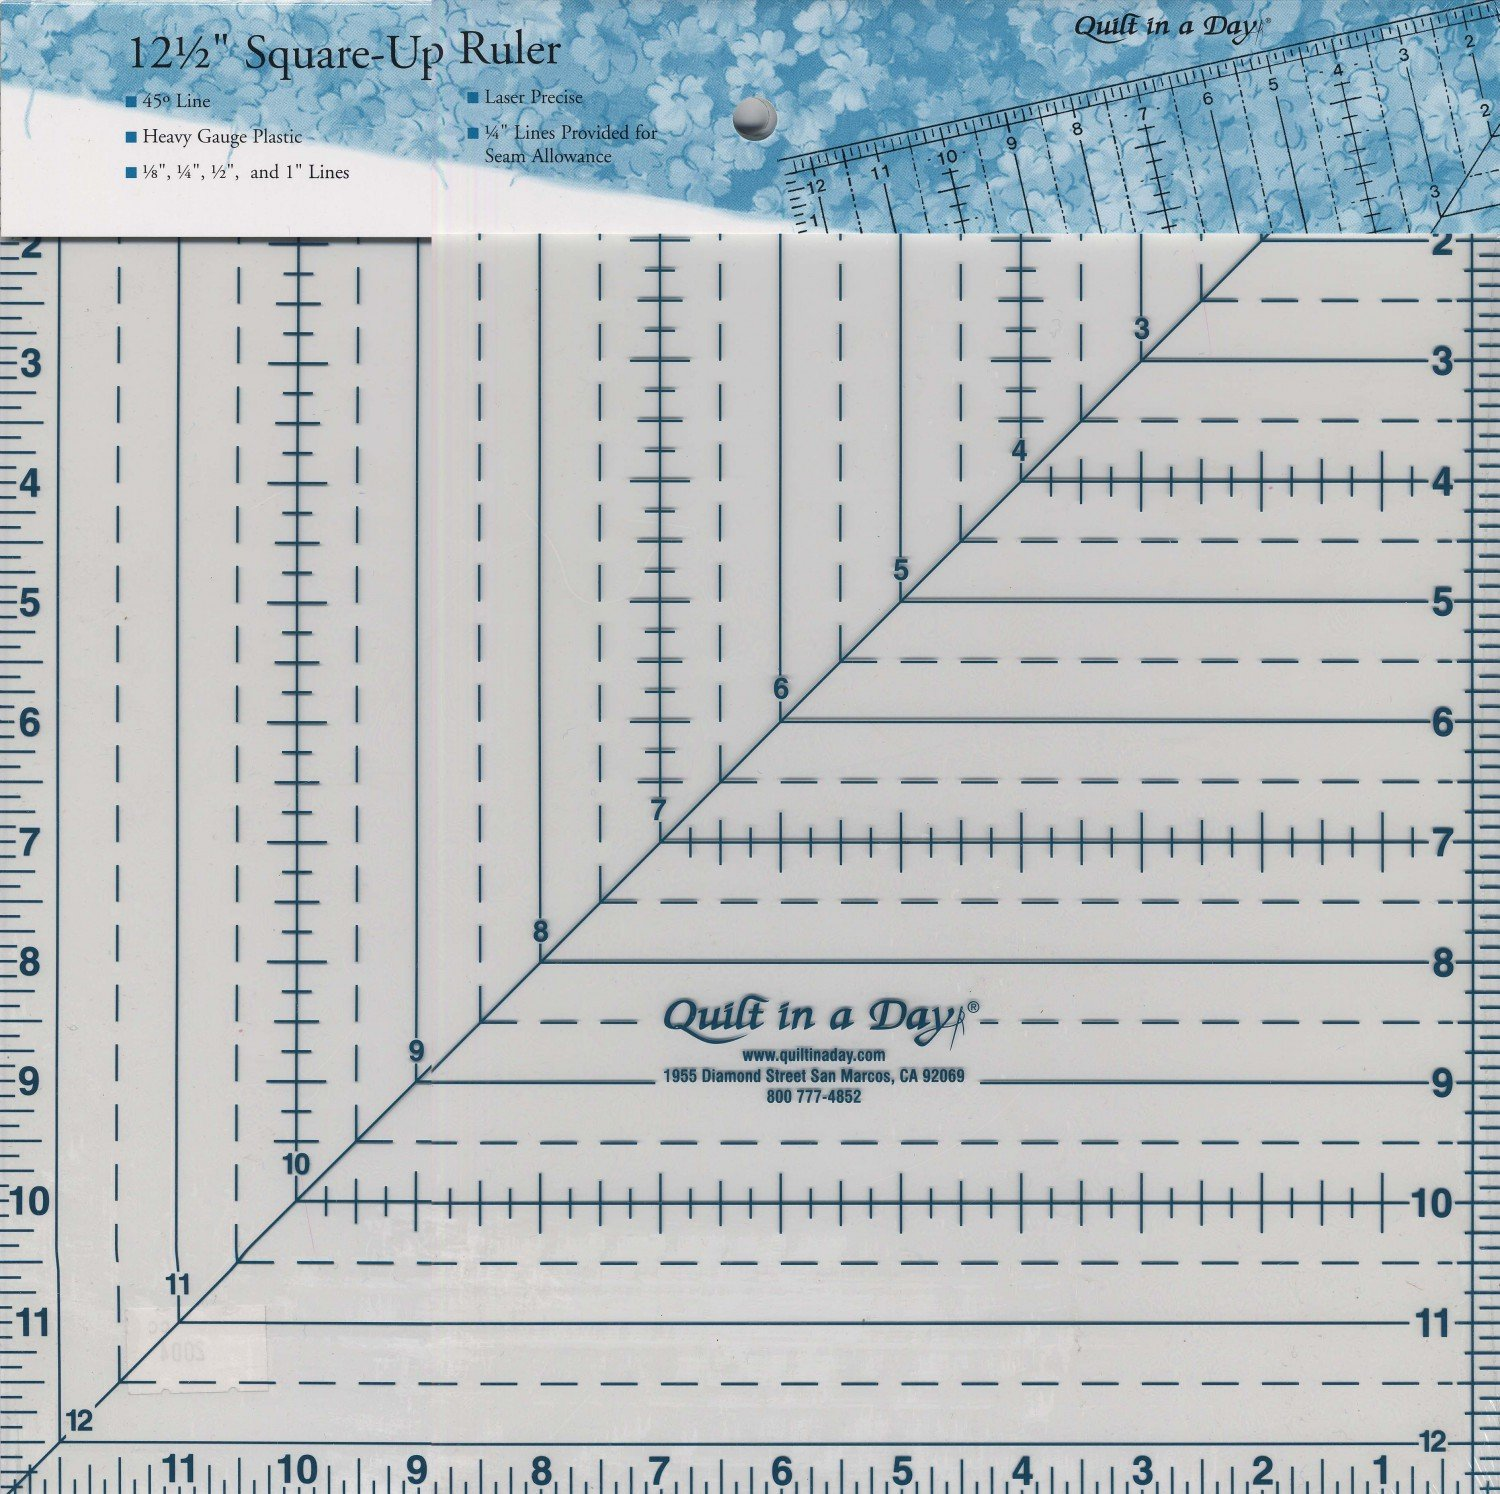 Quilt In A Day 12.5 Square-Up Ruler